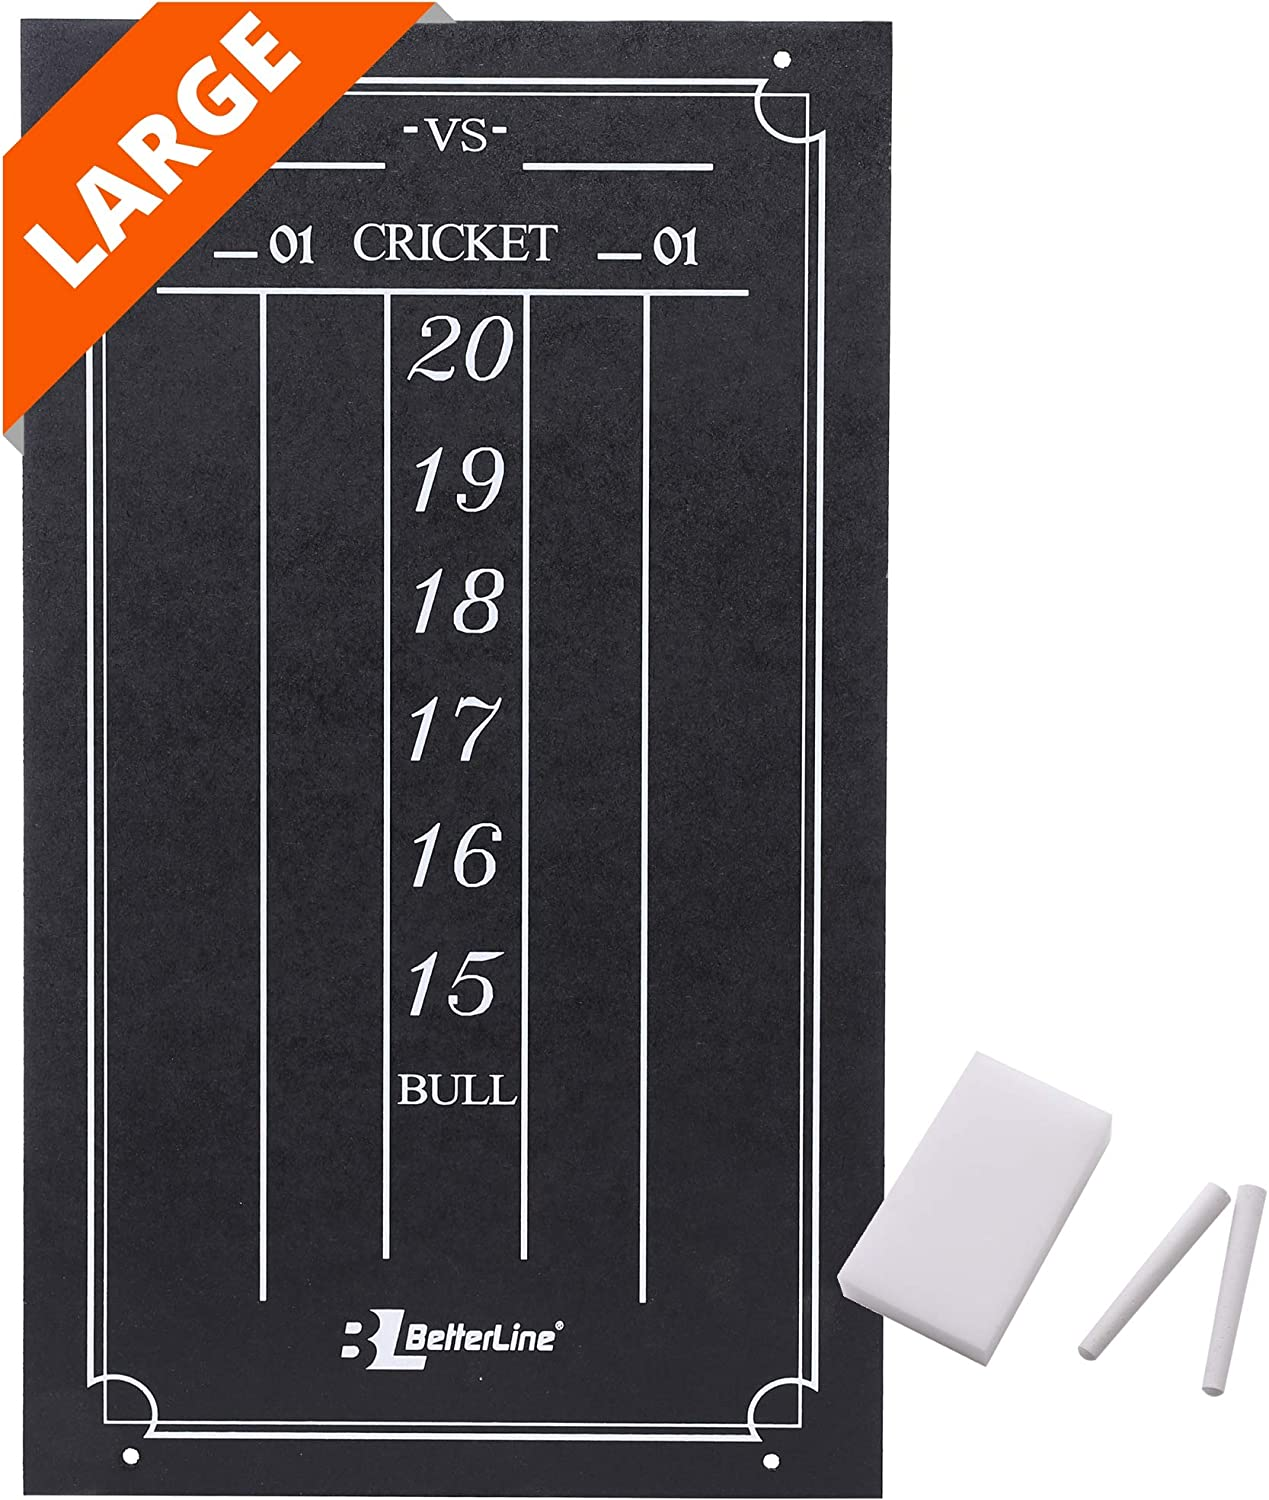 "BETTERLINE Large Professional Scoreboard Chalkboard for Cricket and 01 Darts Games - 15.5"" x 9"" Inch (39.3 x 22.9 cm) - Black Board - Eraser and 2 Chalk Pieces Included"